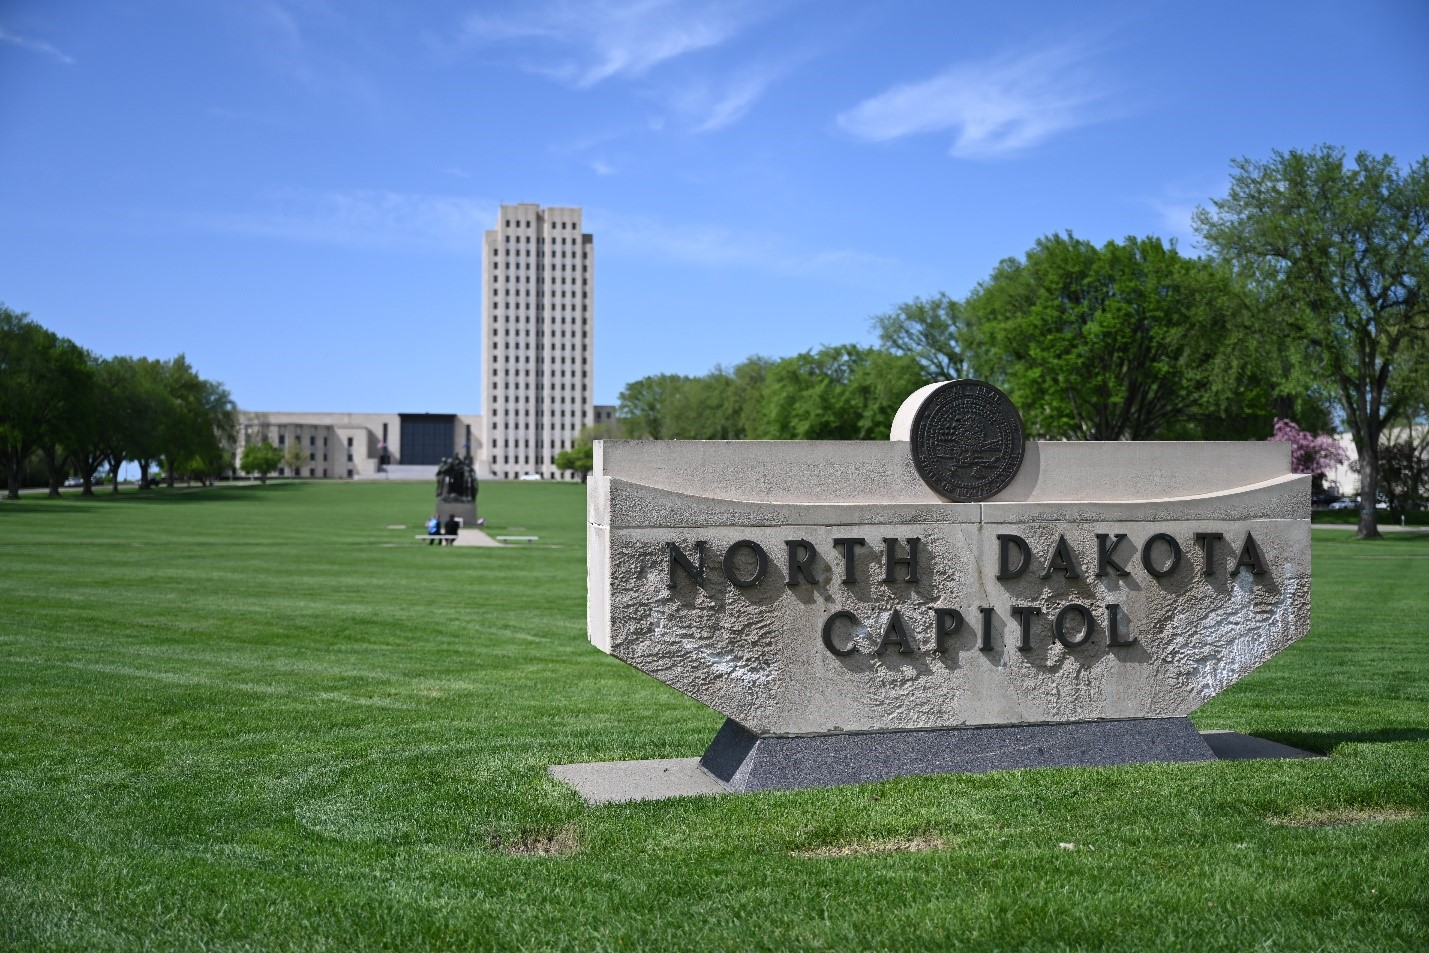 North Dakota Capitol